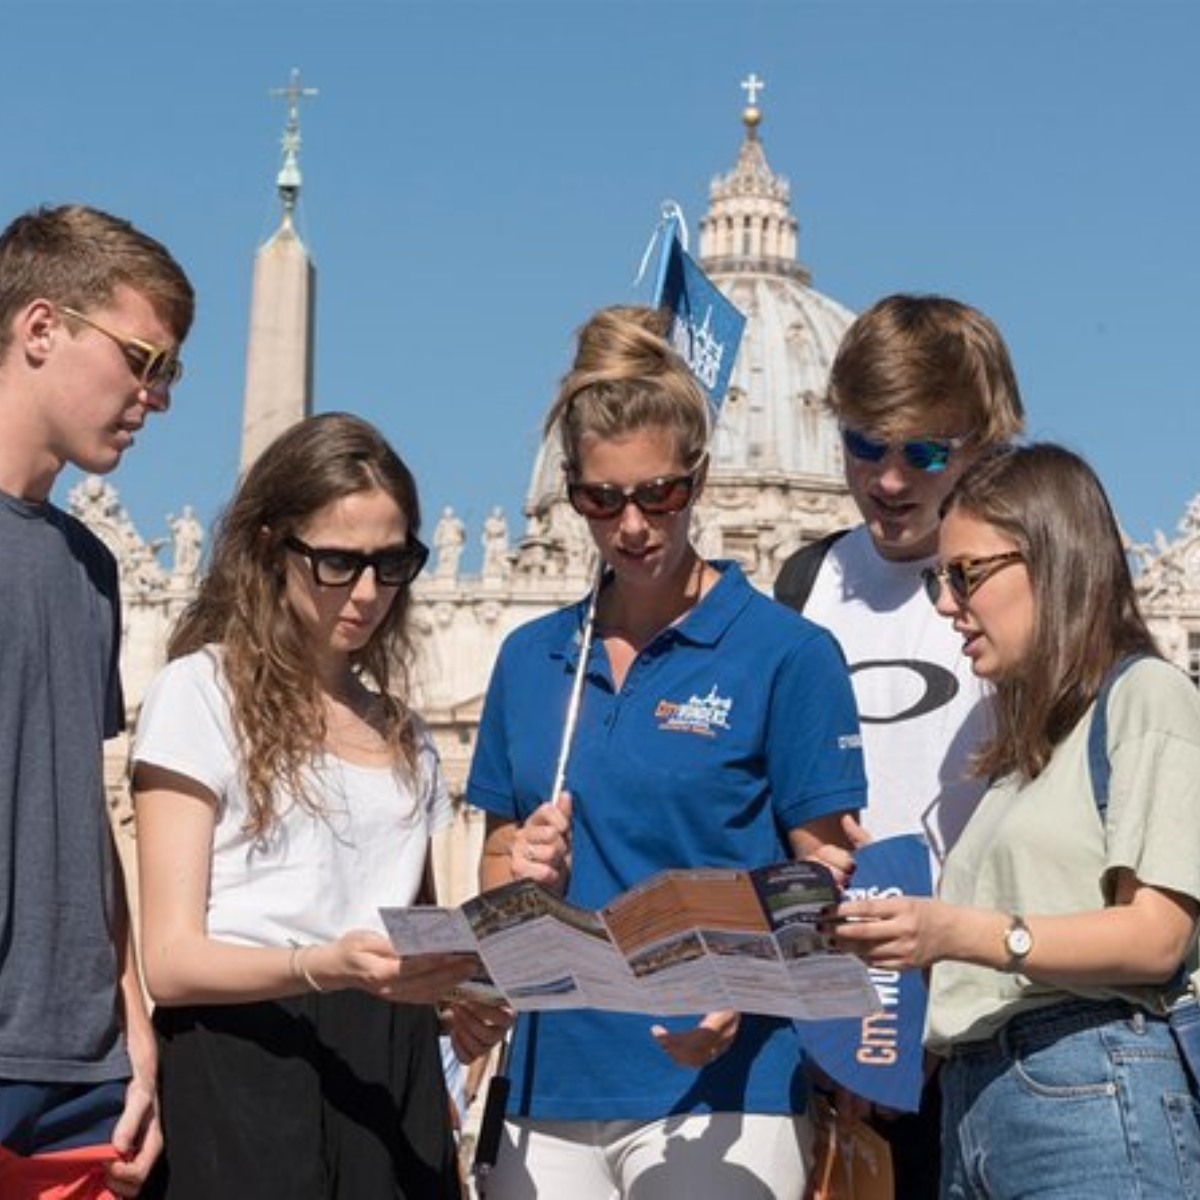 Skip the Line: Vatican Museums Walking Tour including Sistine Chapel, Raphael's Rooms and St Peter's Images